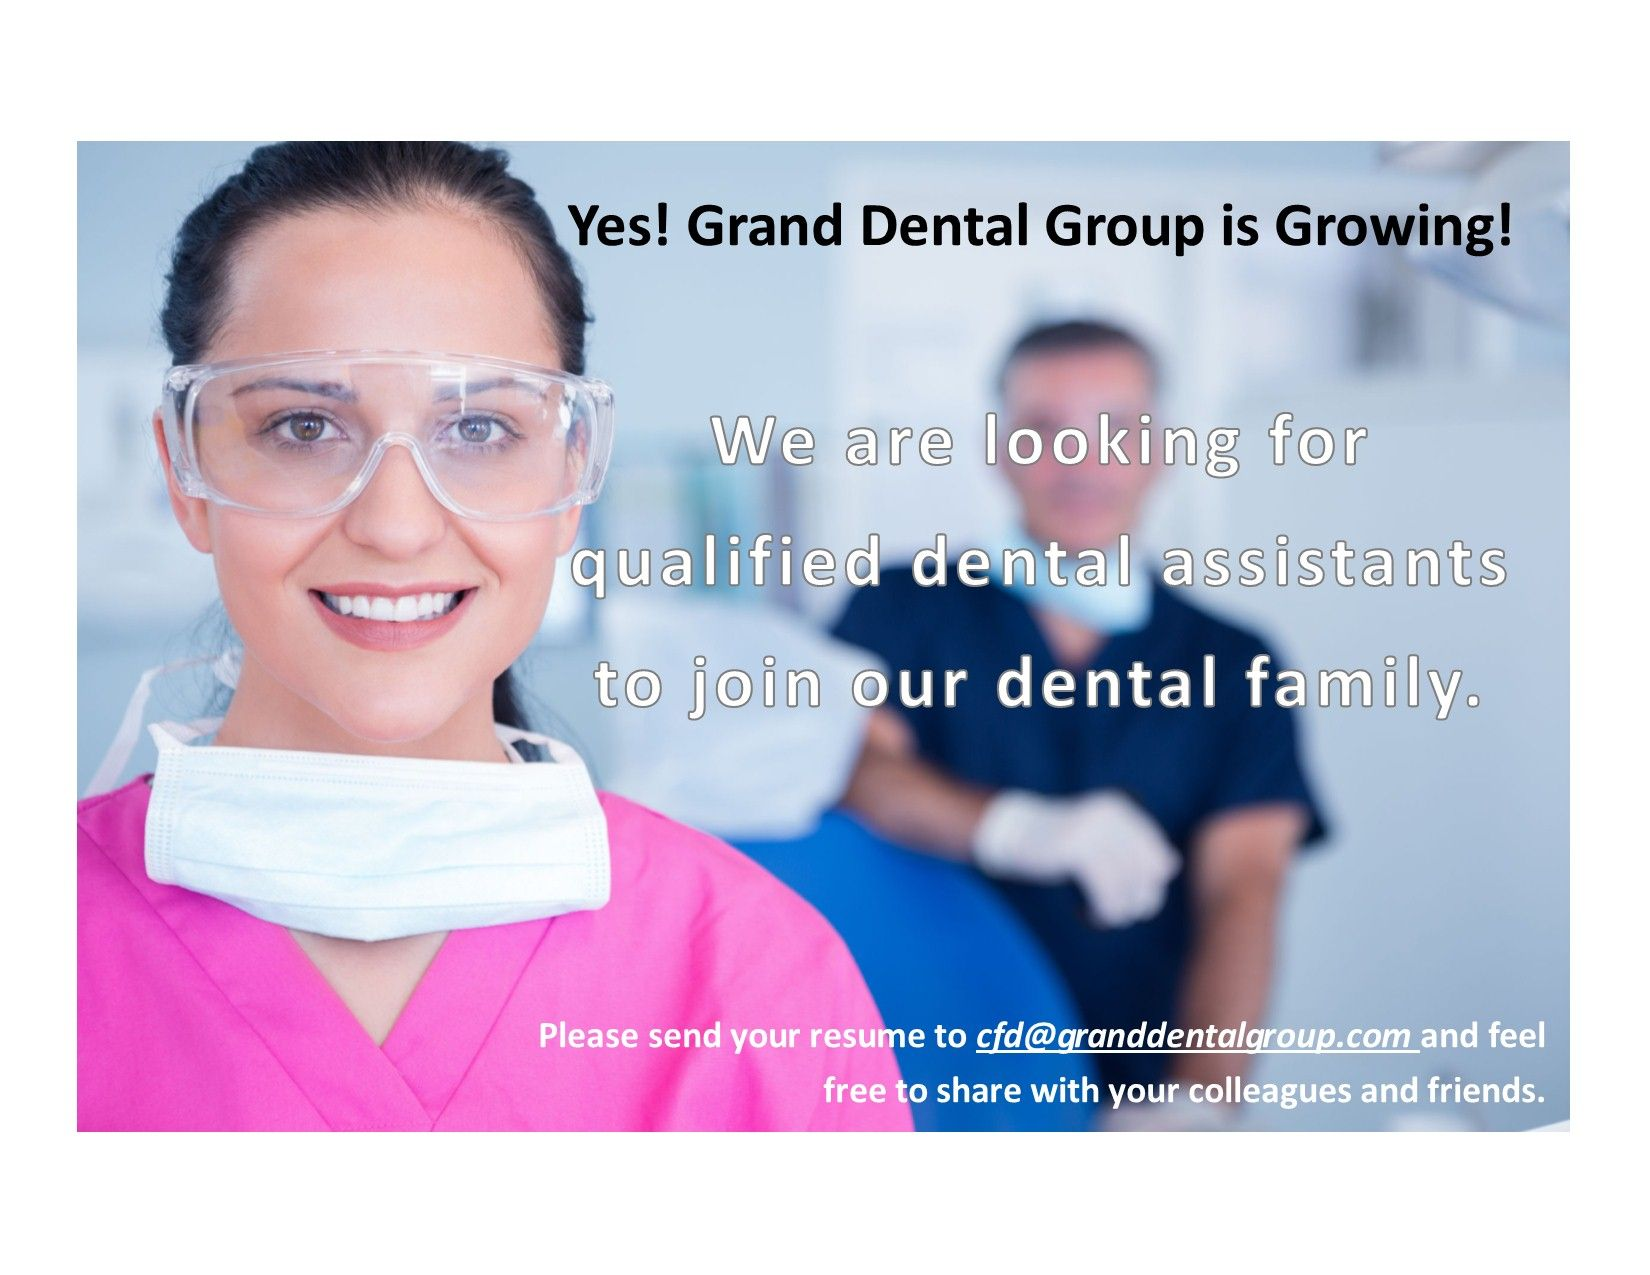 Yes, we are hiring dental assistants in our Illinois